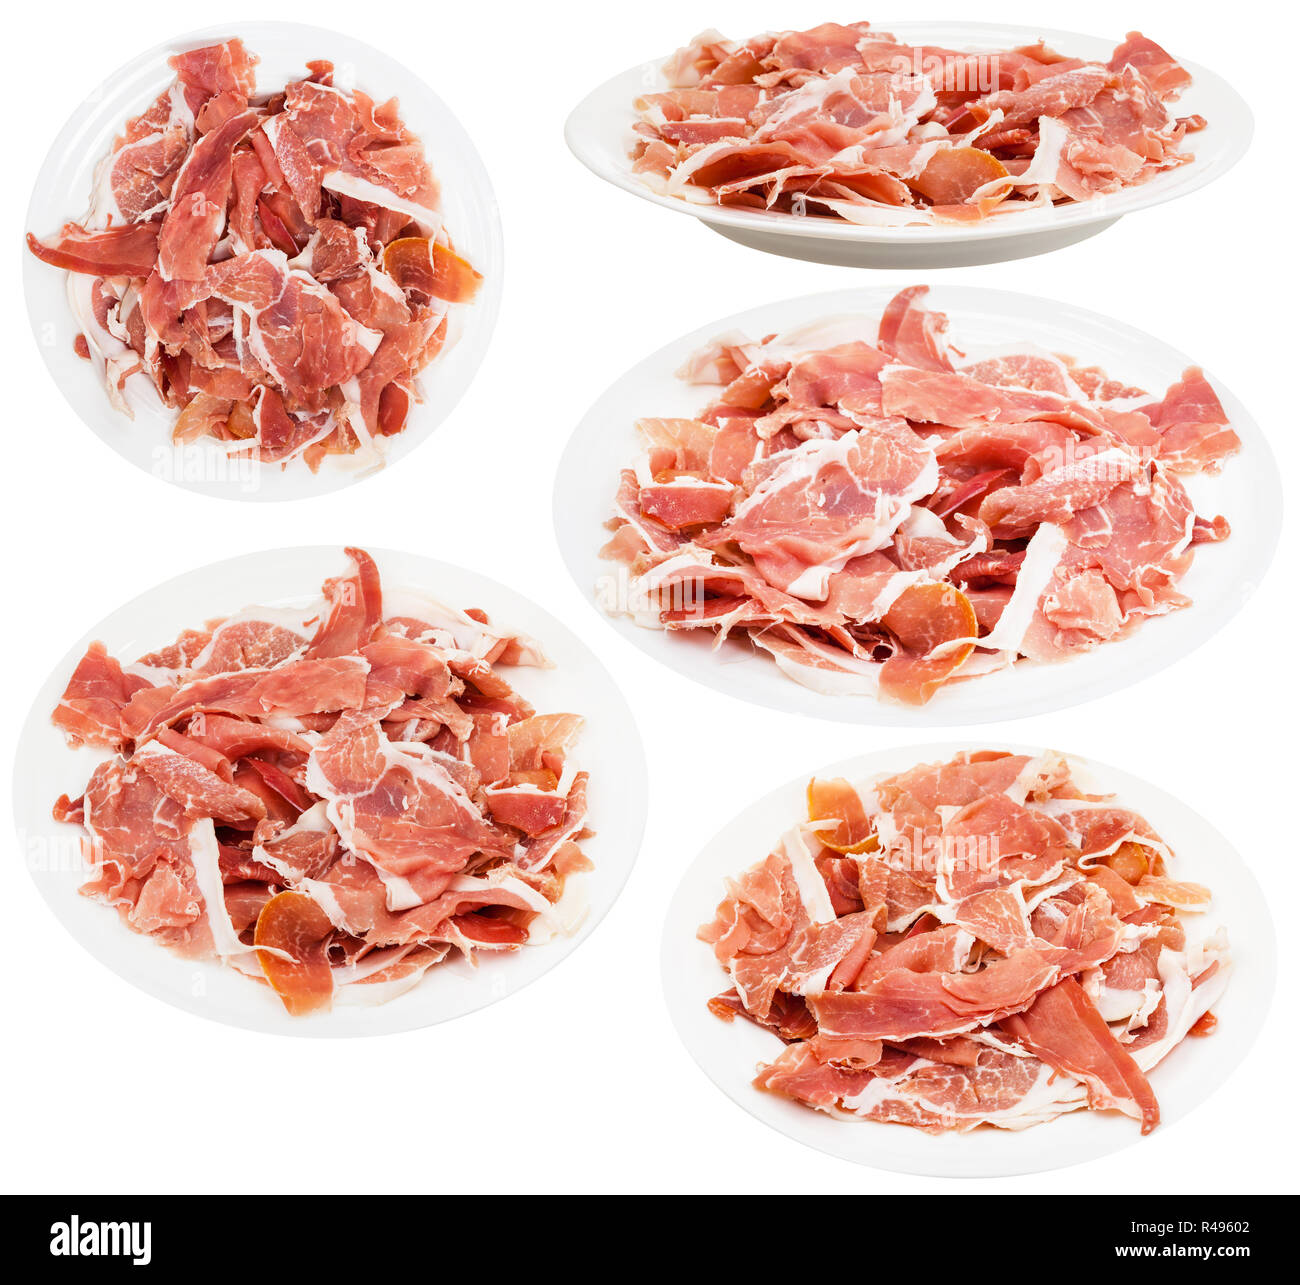 set of plates with slaced dry-cured ham isolated - Stock Image